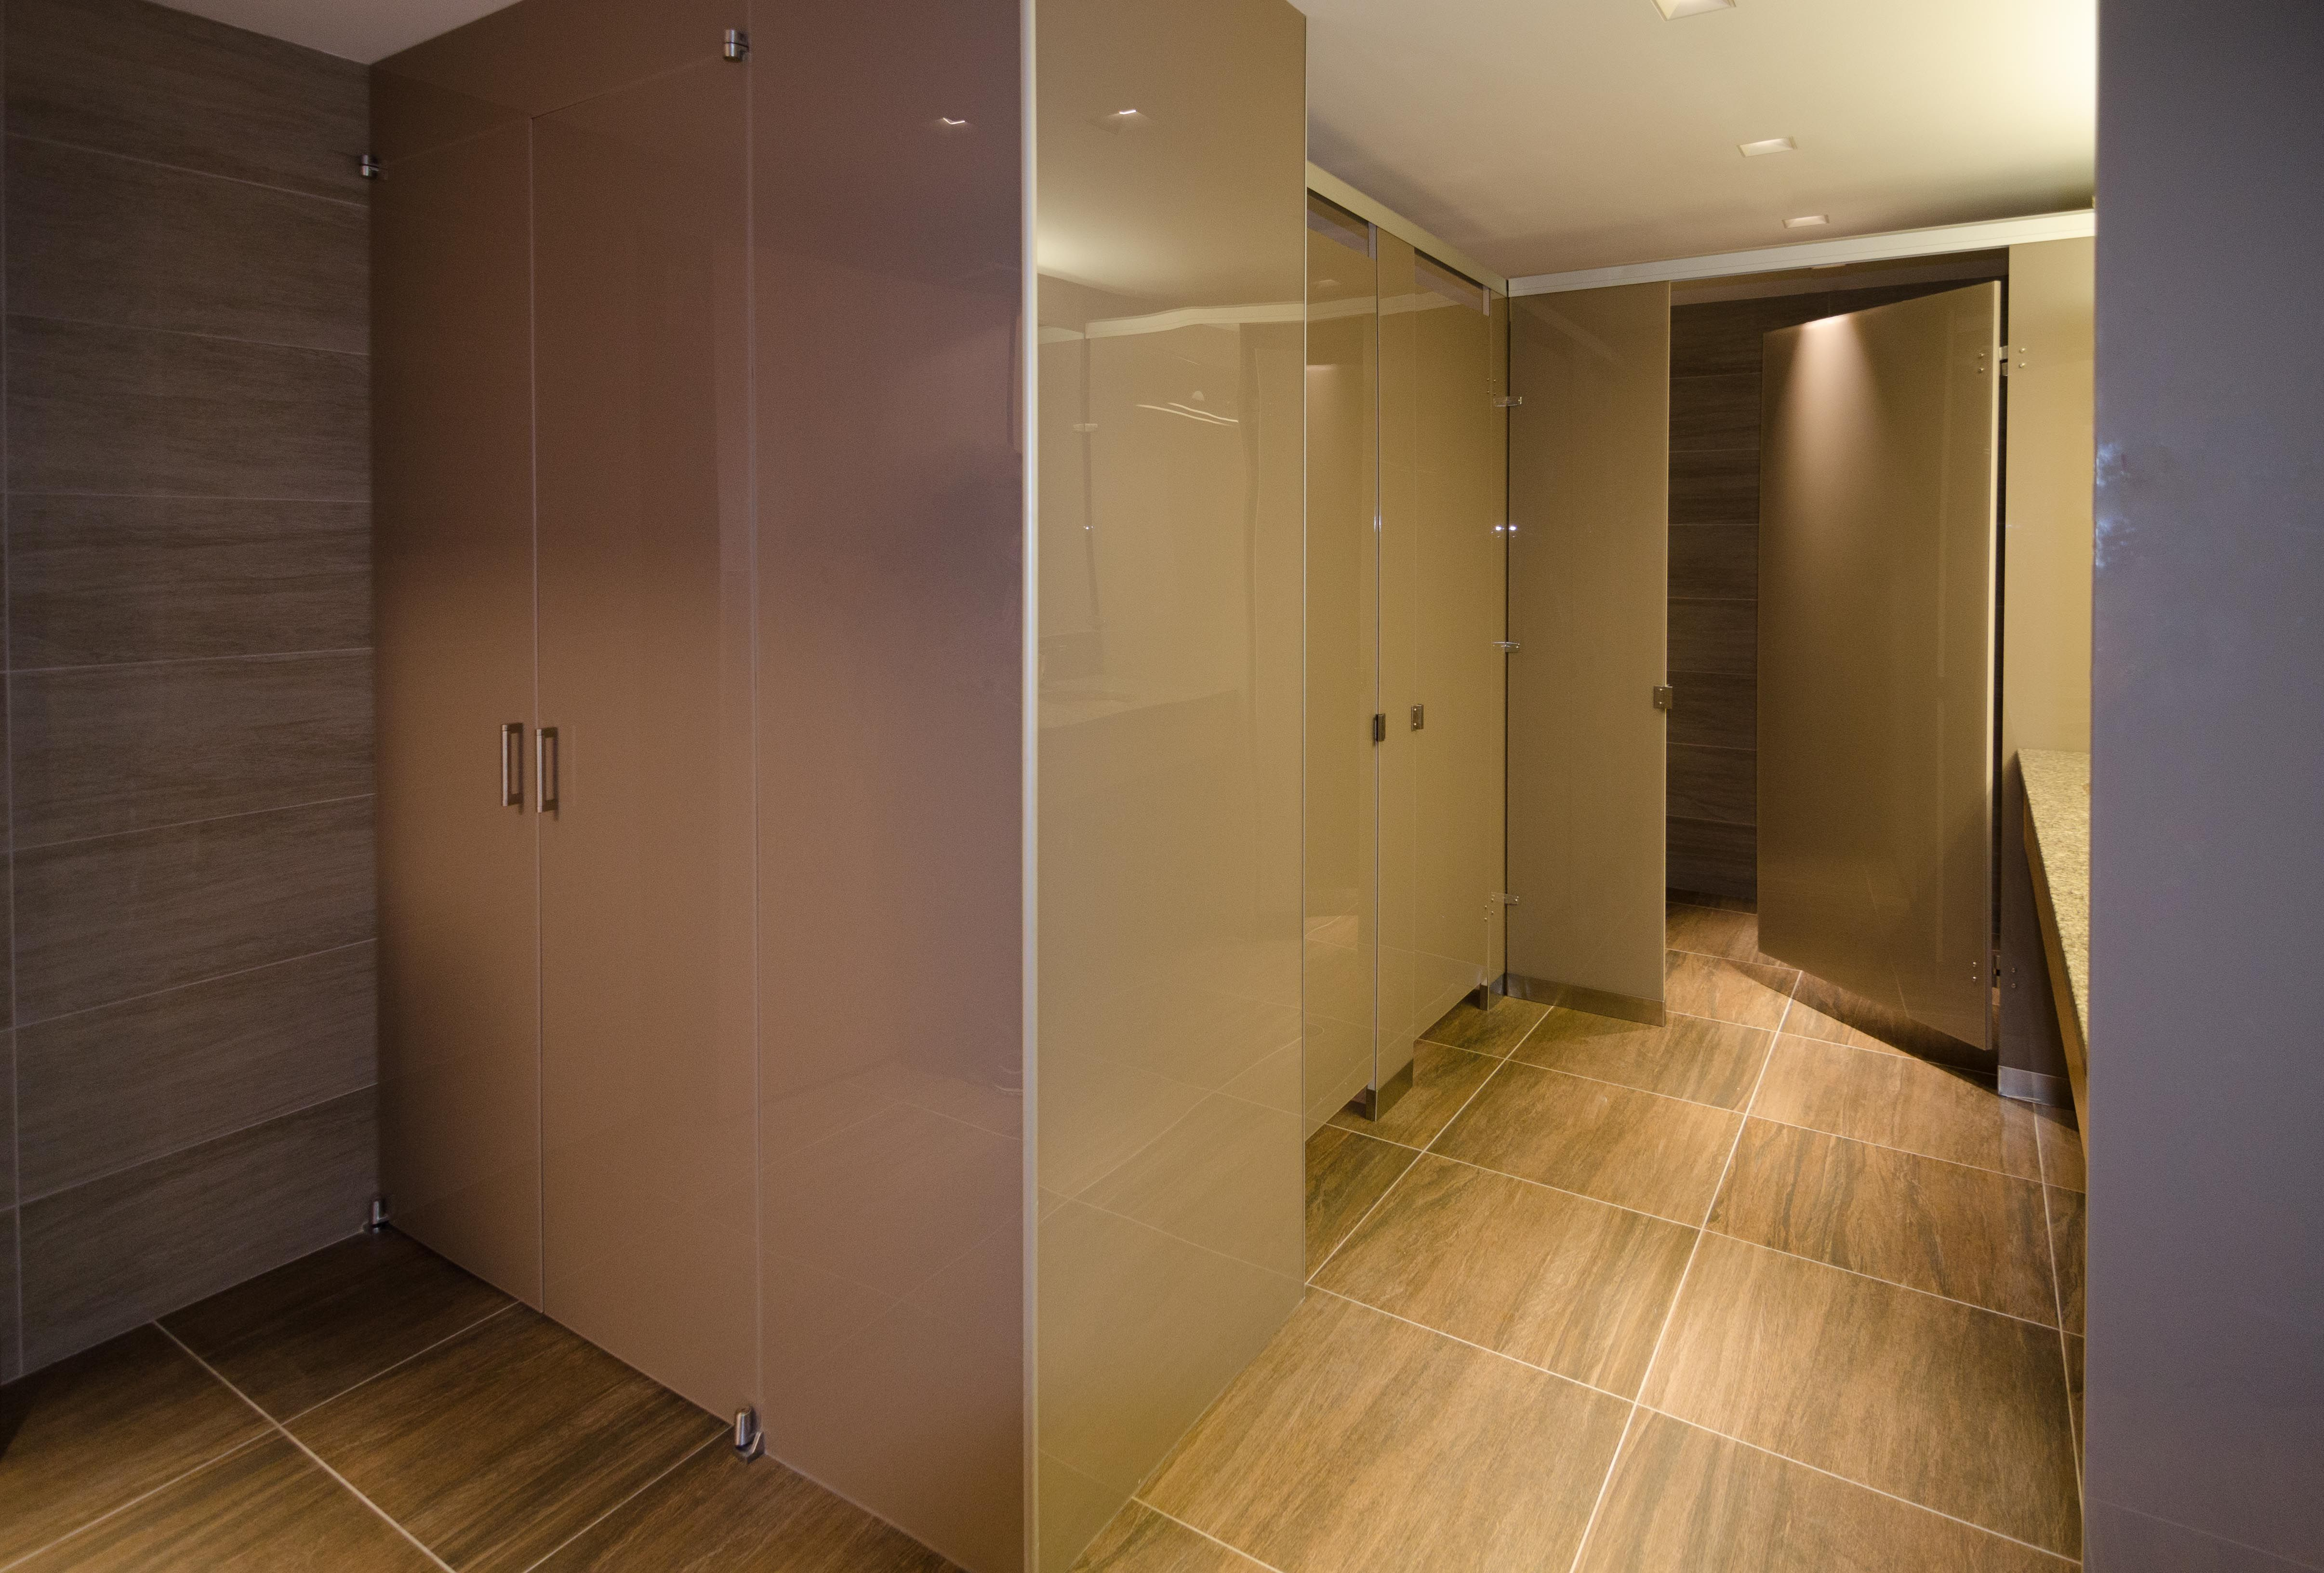 Ironwood Manufacturing Laminate With Zenolite Toilet Partitions And - Bathroom stall manufacturers